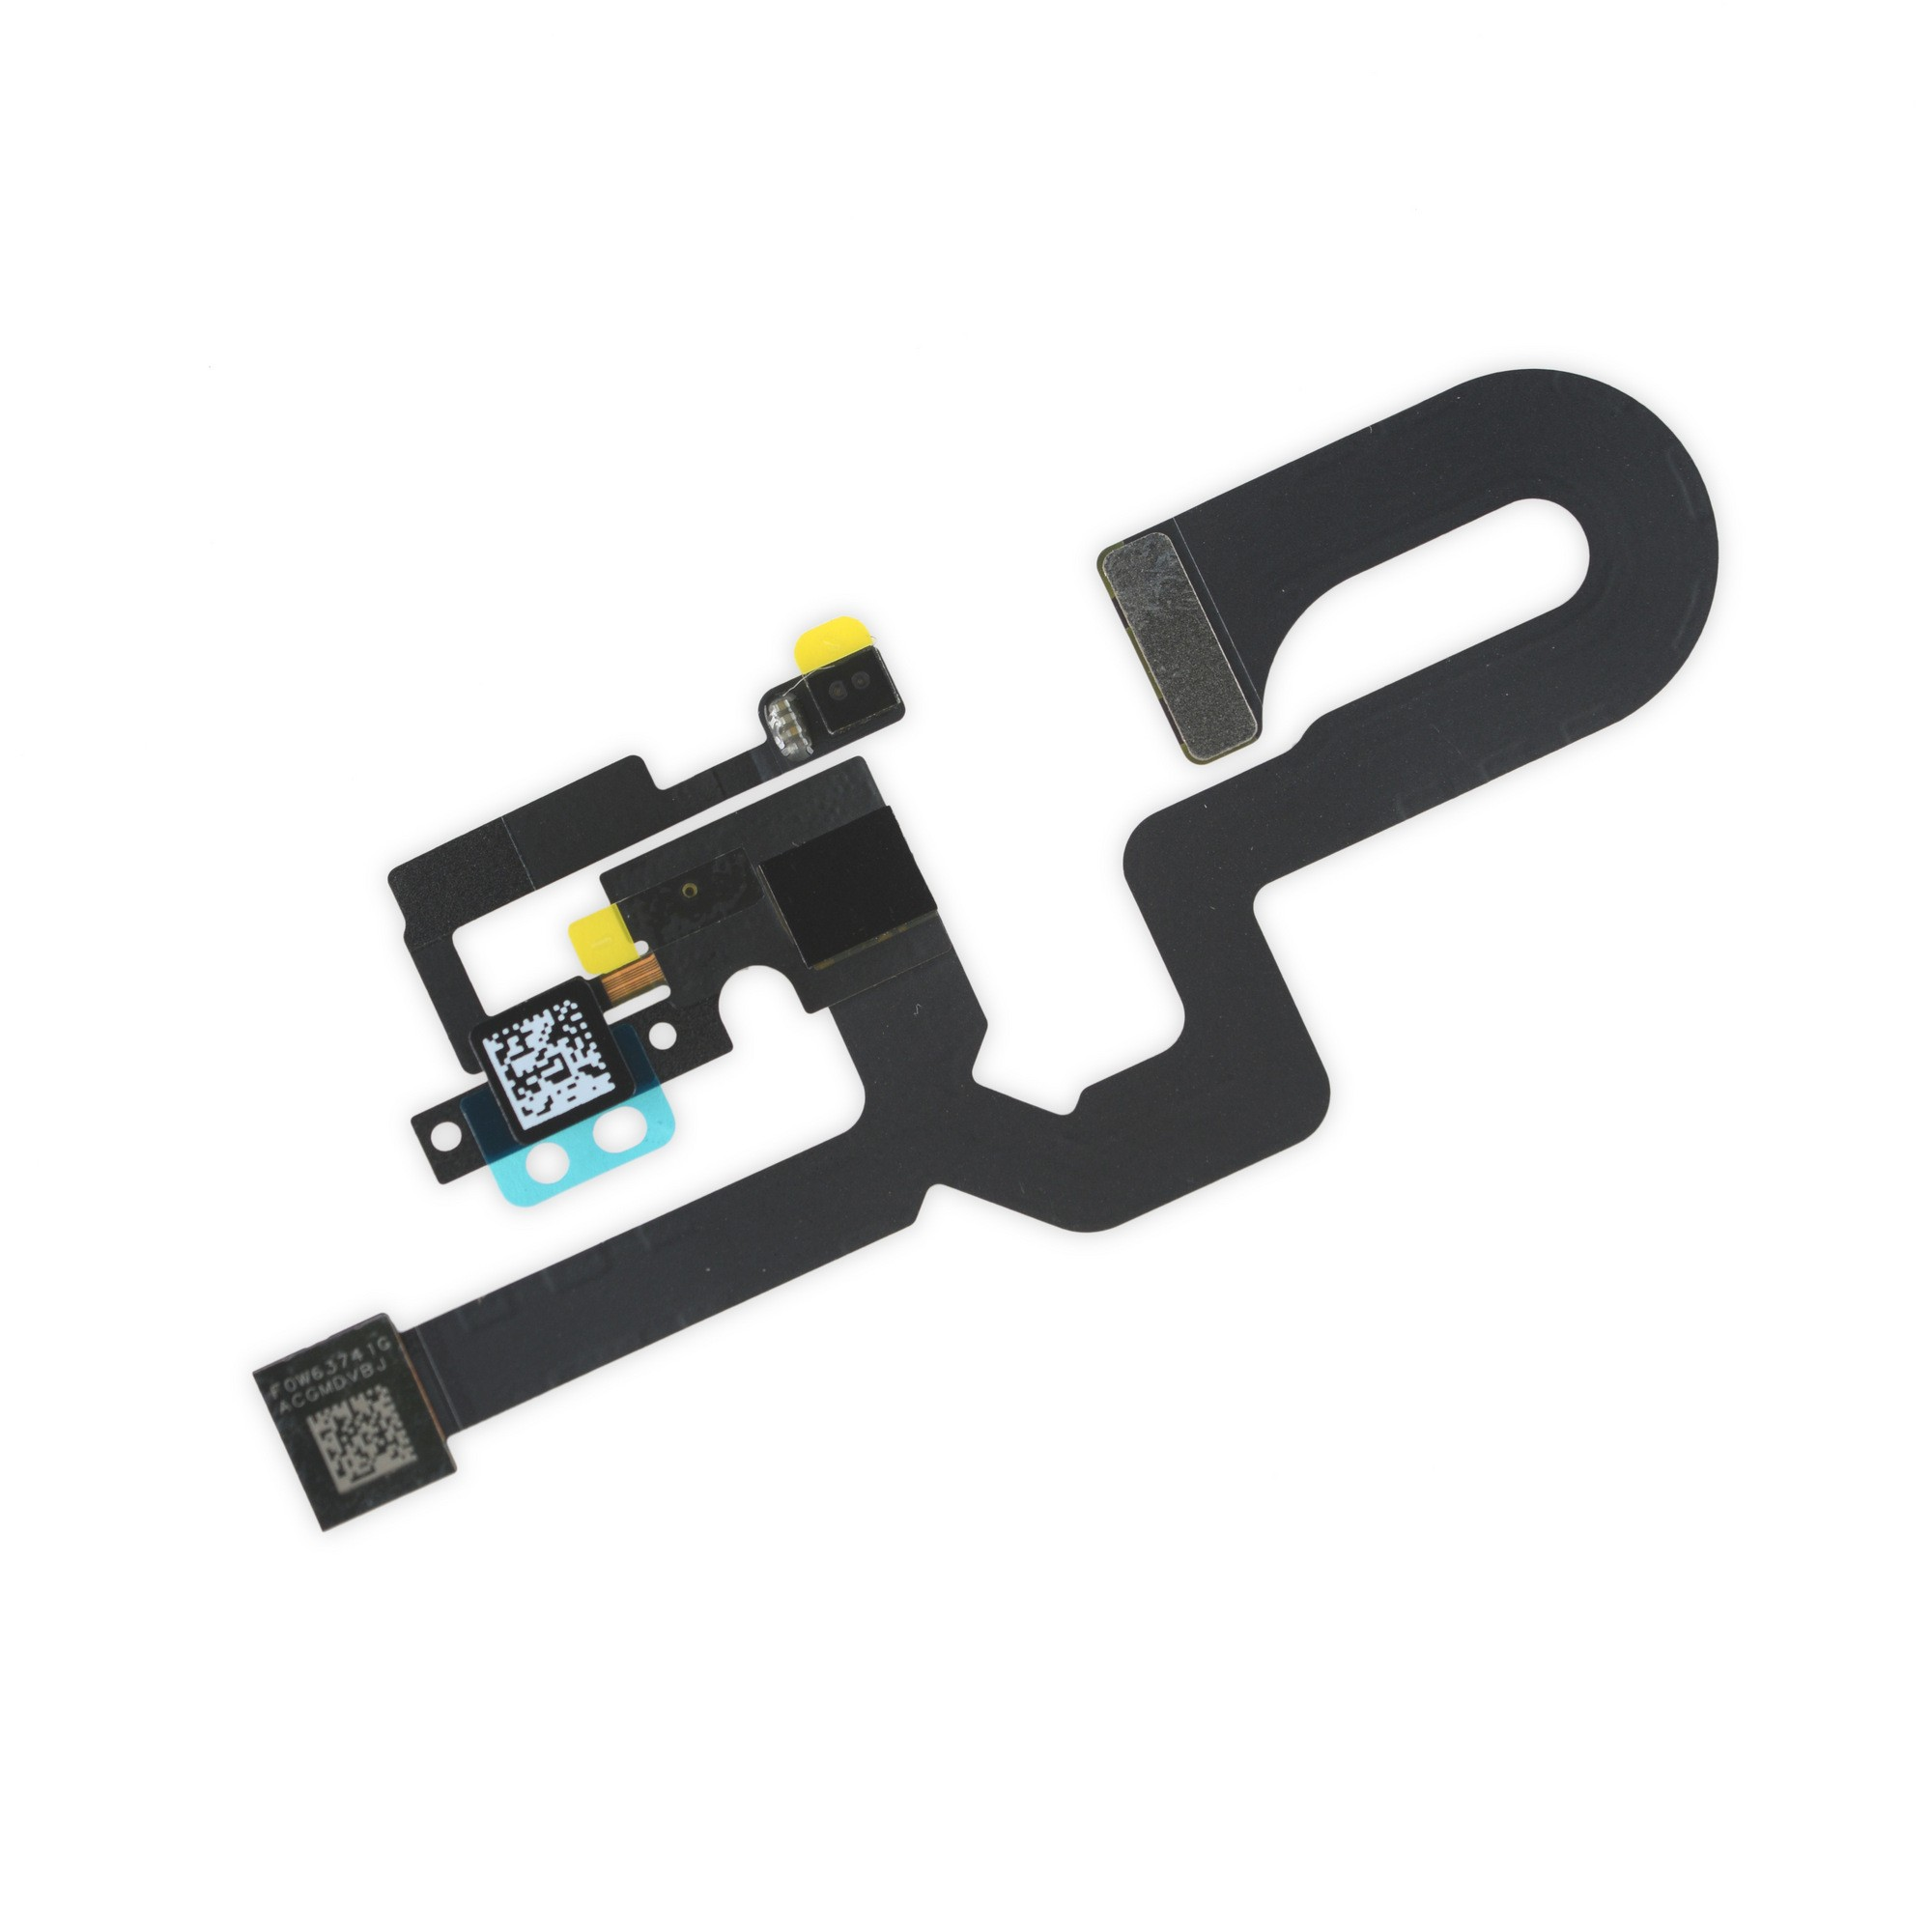 iPhone 7 Plus Front Camera and Sensor Cable, New, Part Only, IF333-006-1